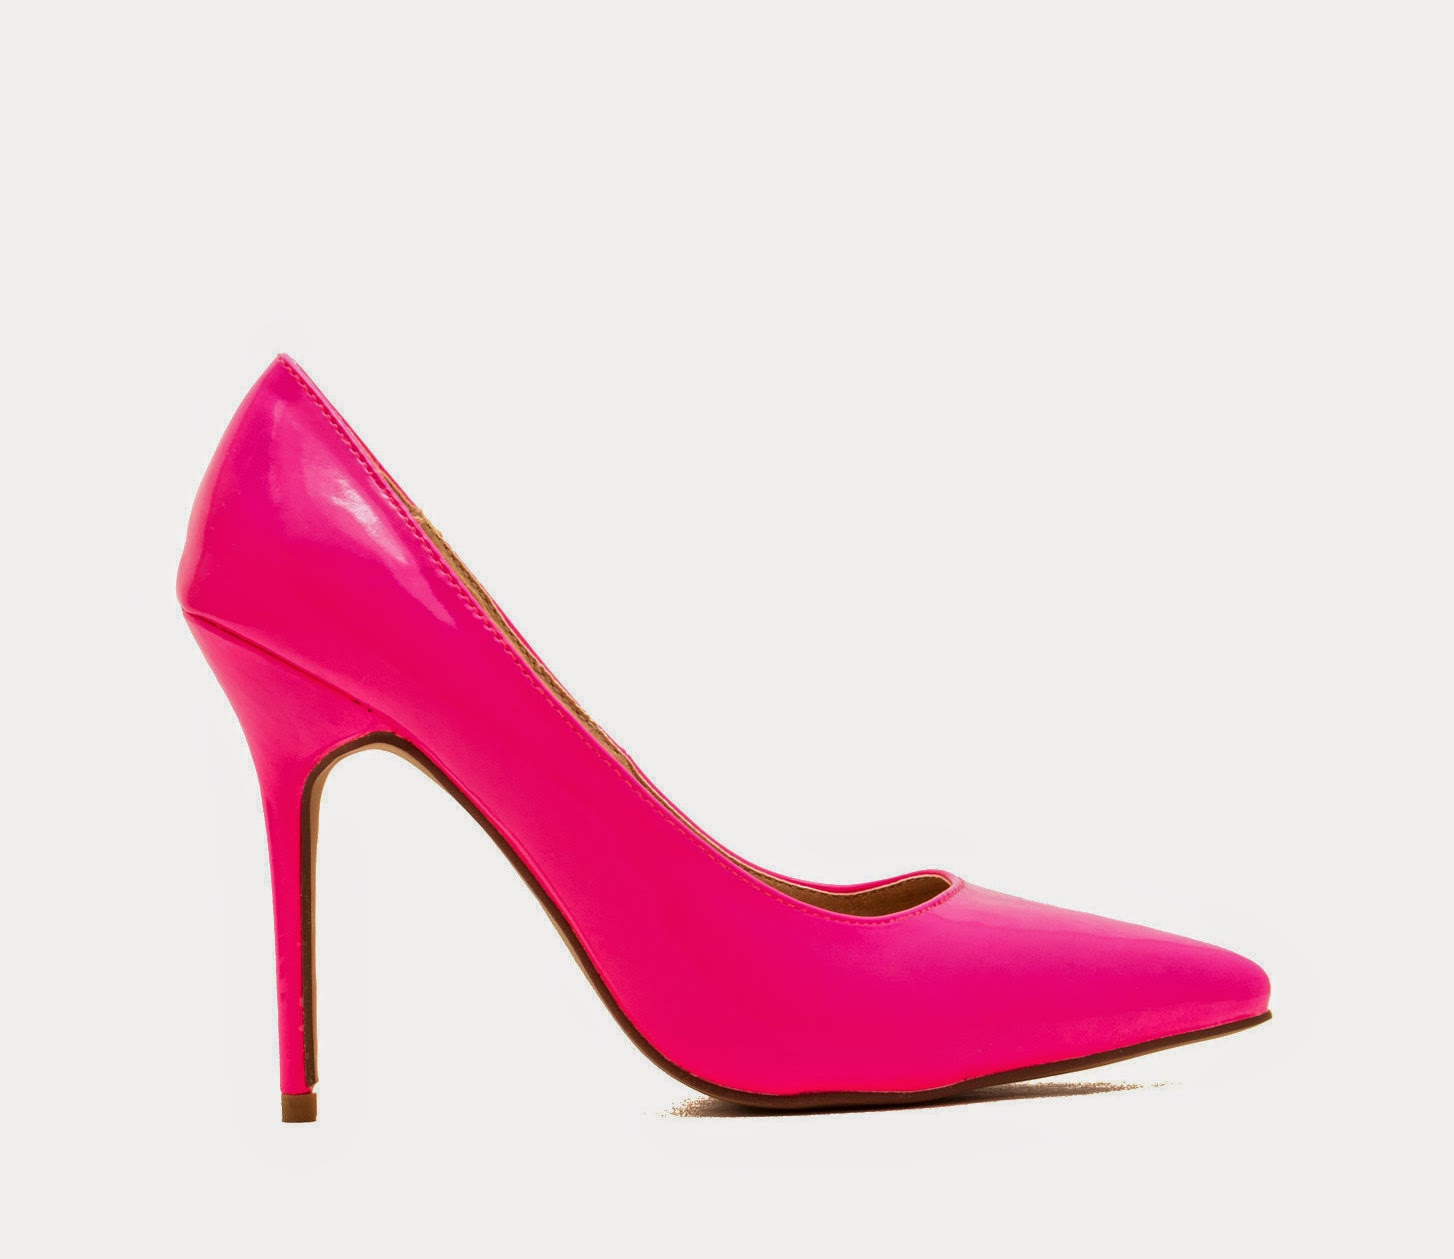 wardrobe essentials, basics,pop of colour, fuchsia pumps